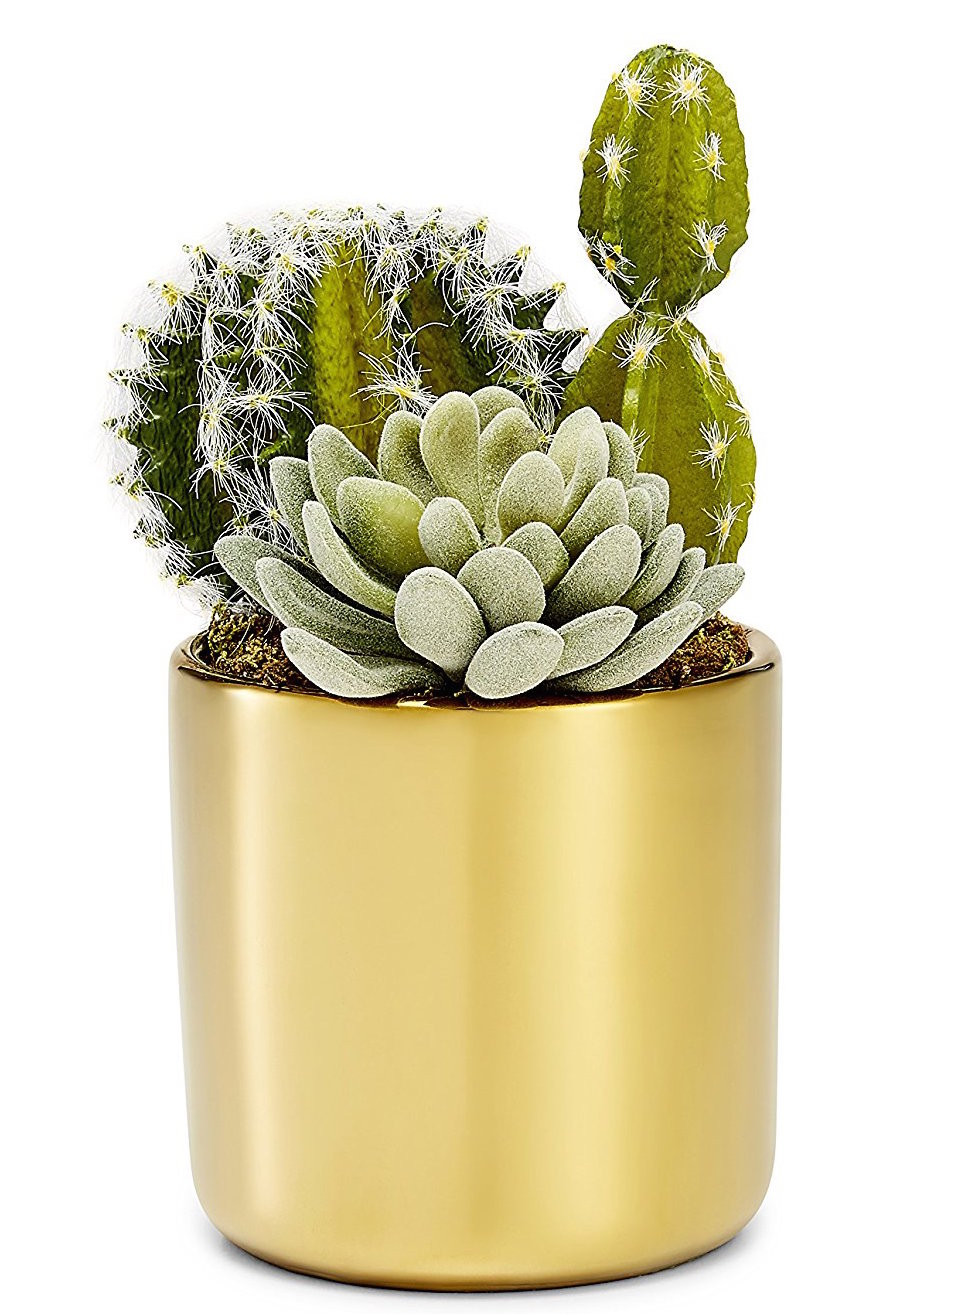 Our metallic, gold succulent pot, now available for order